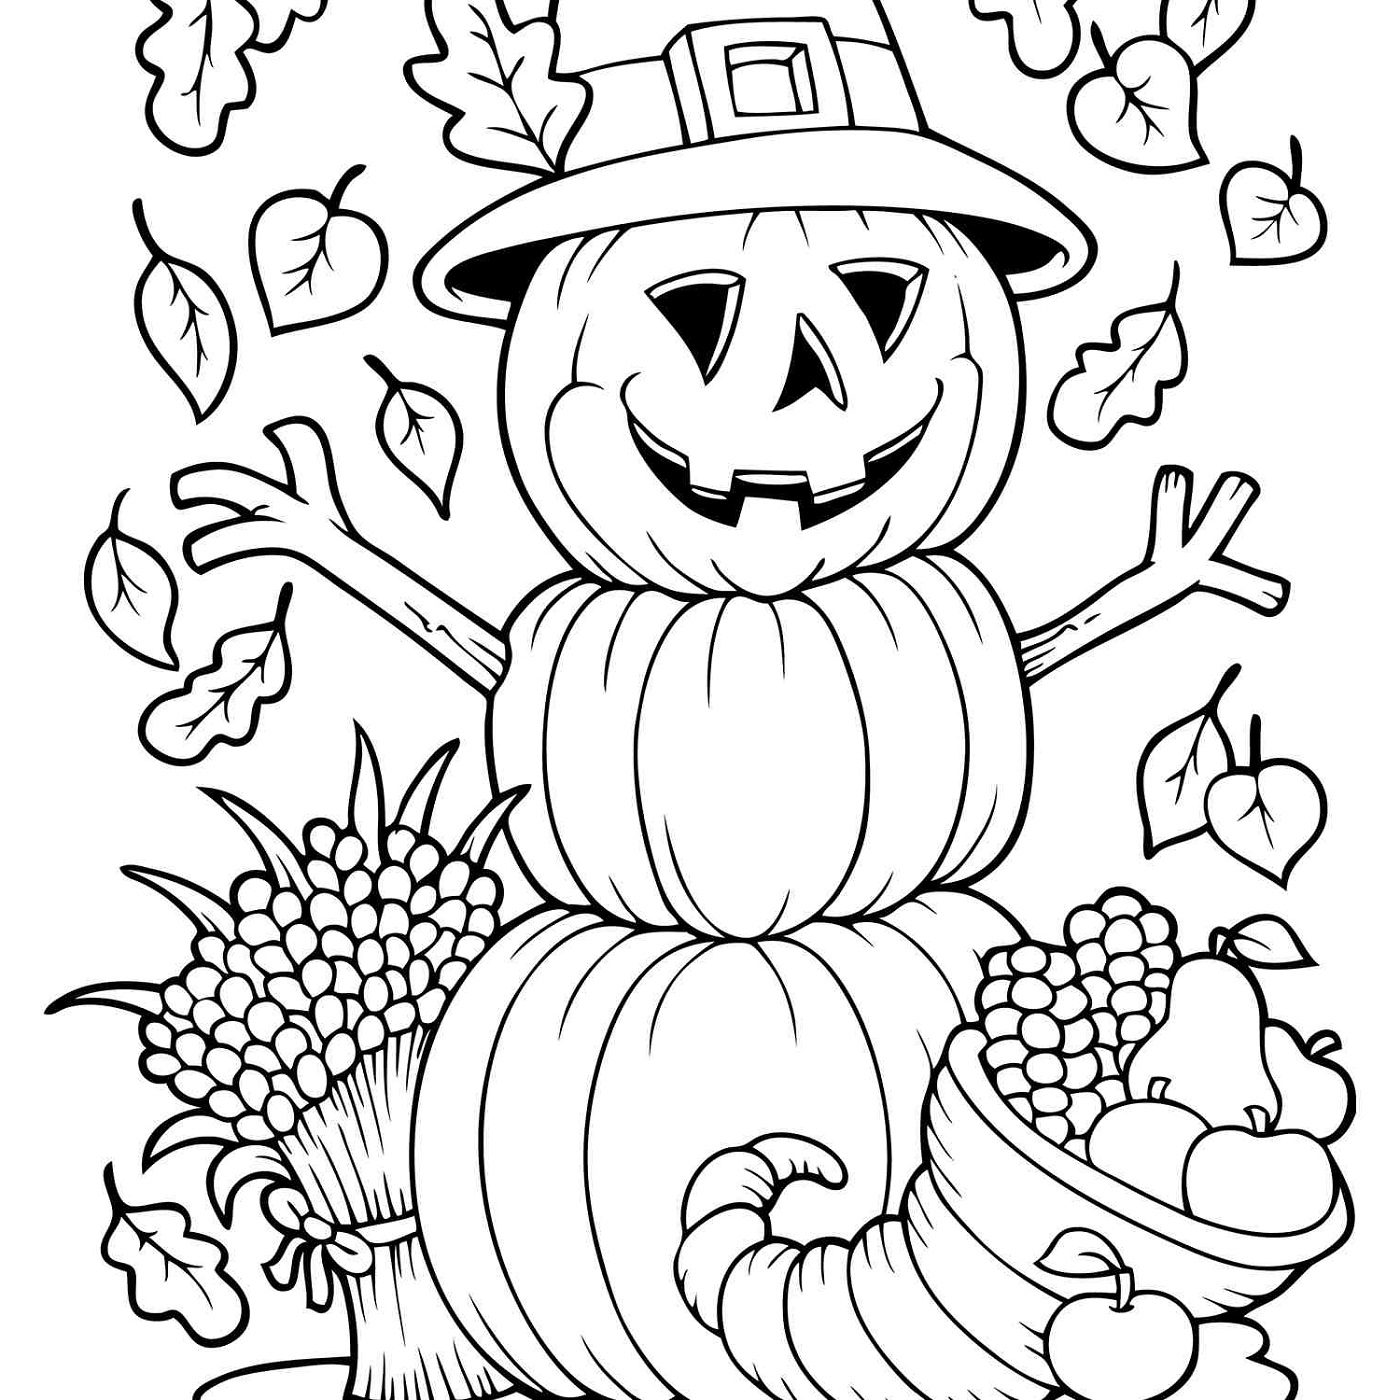 Autumn and Fall Coloring Pages